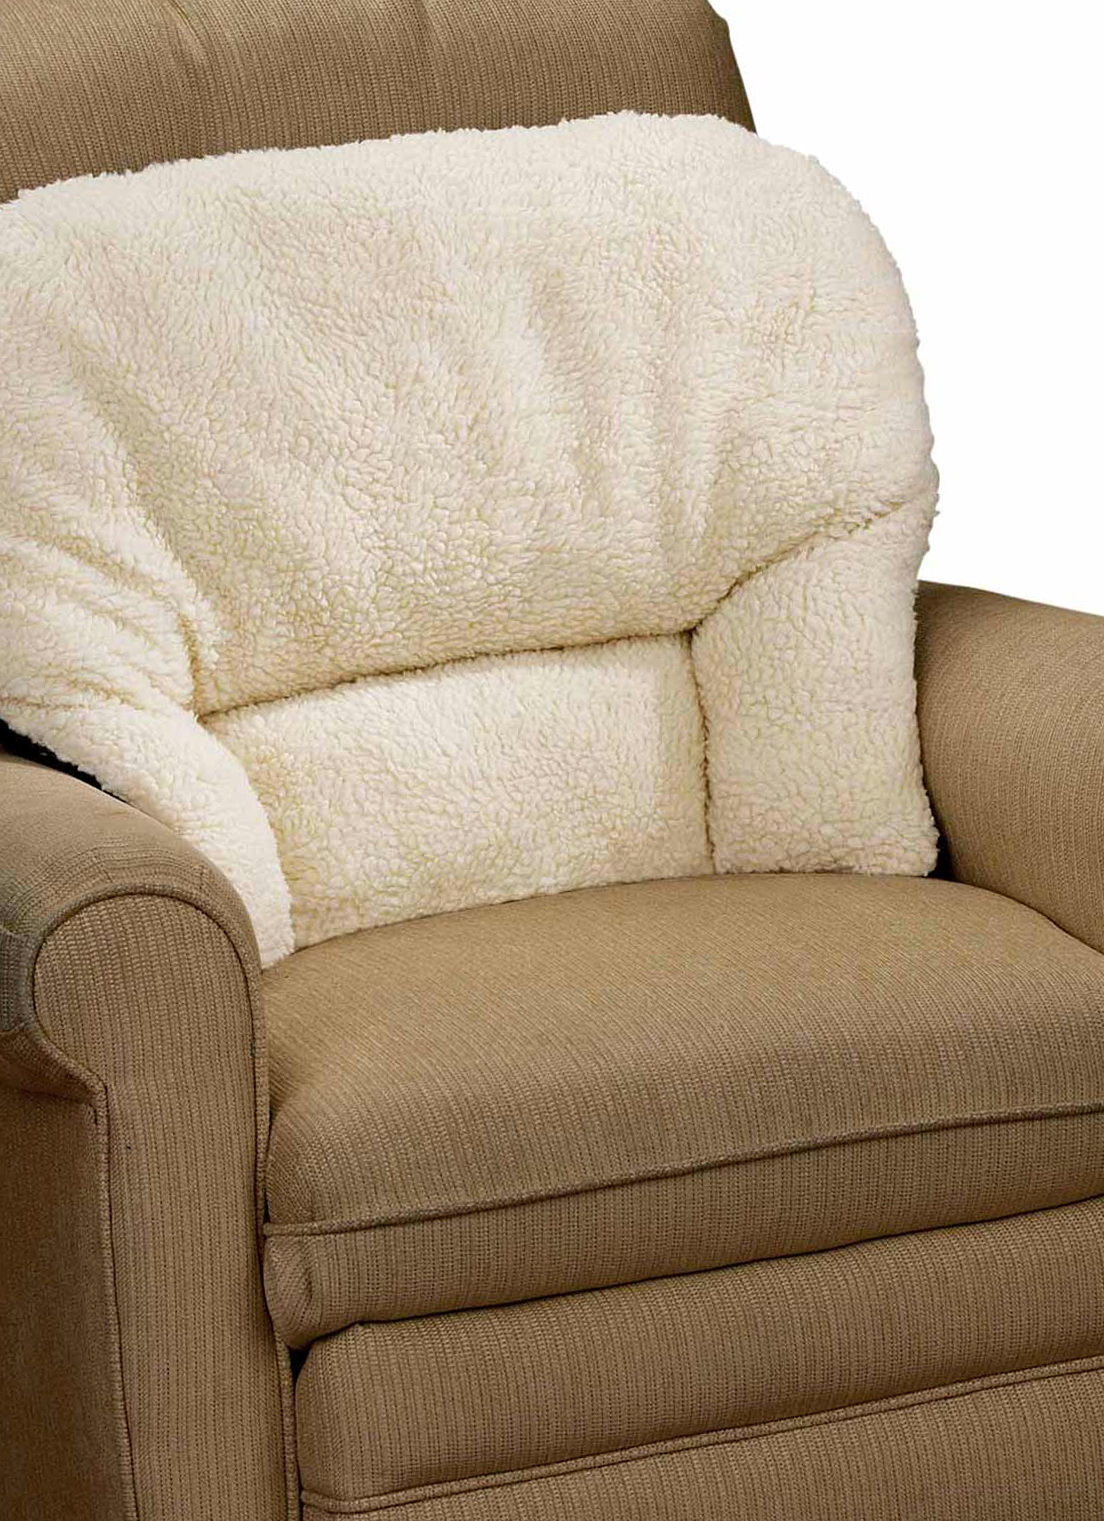 chair cushions at home cover hire bishop auckland back support cushion for recliner | design ideas